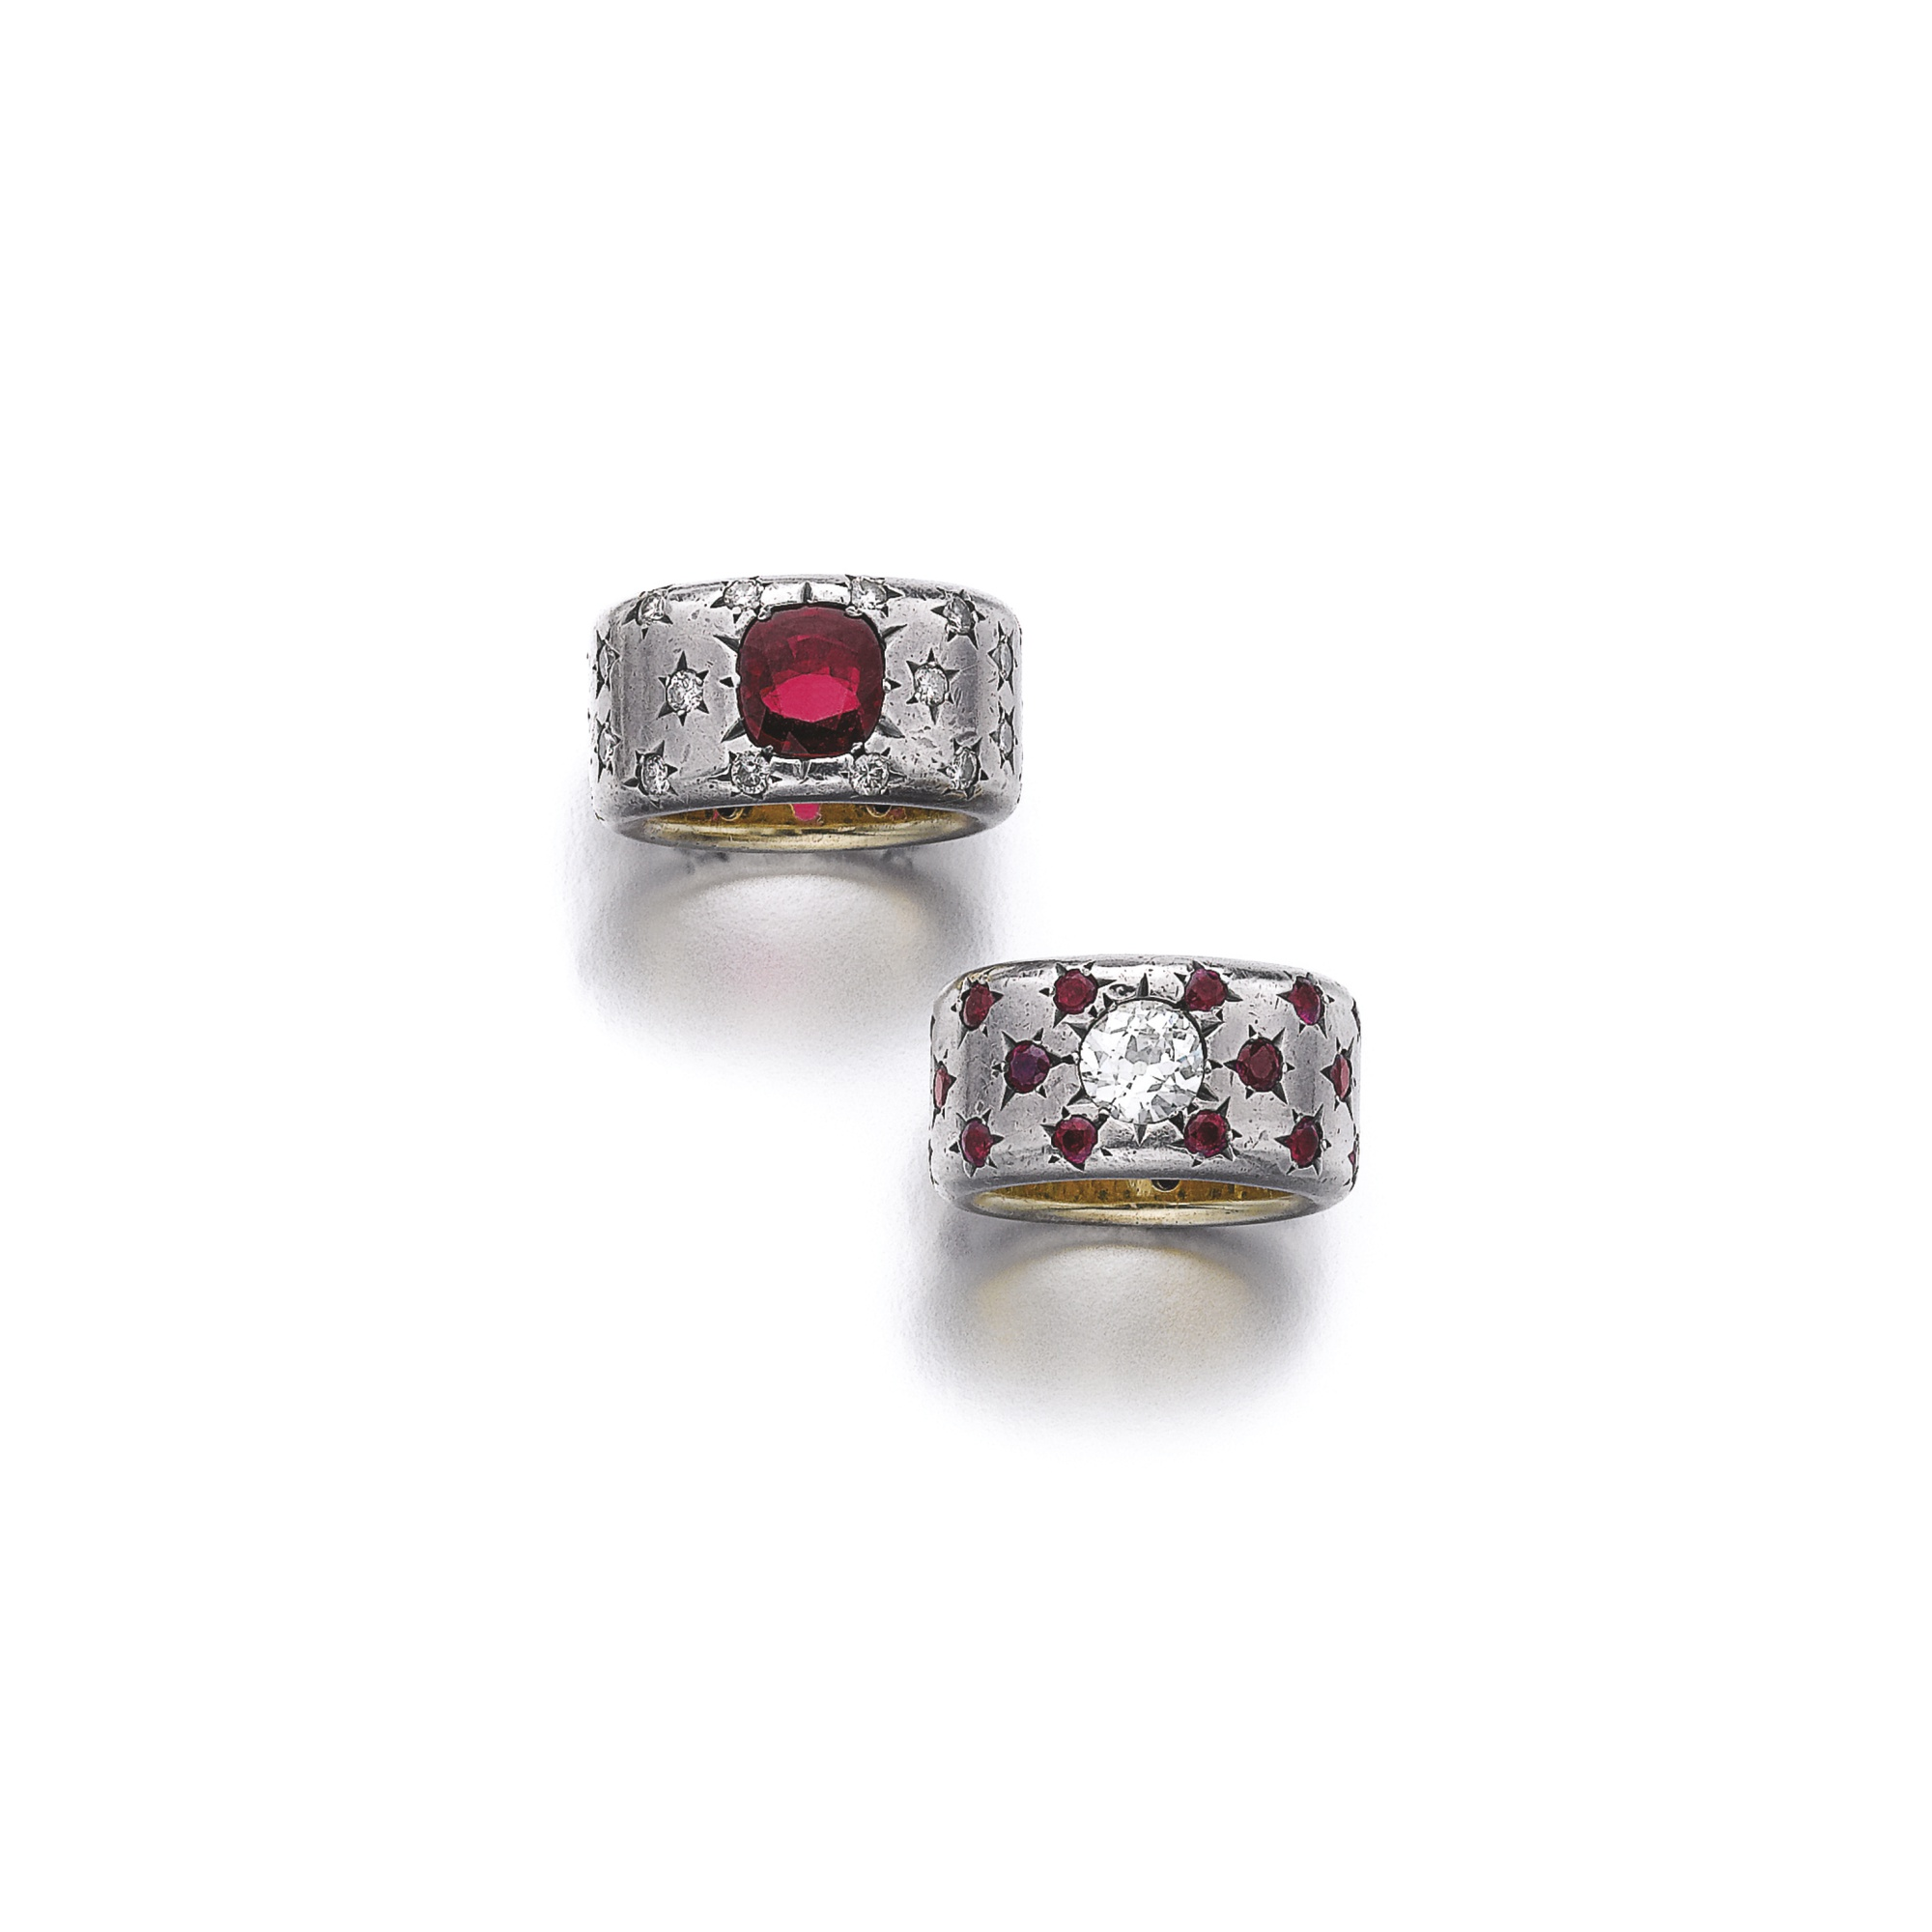 Two ruby and diamond rings by JAR